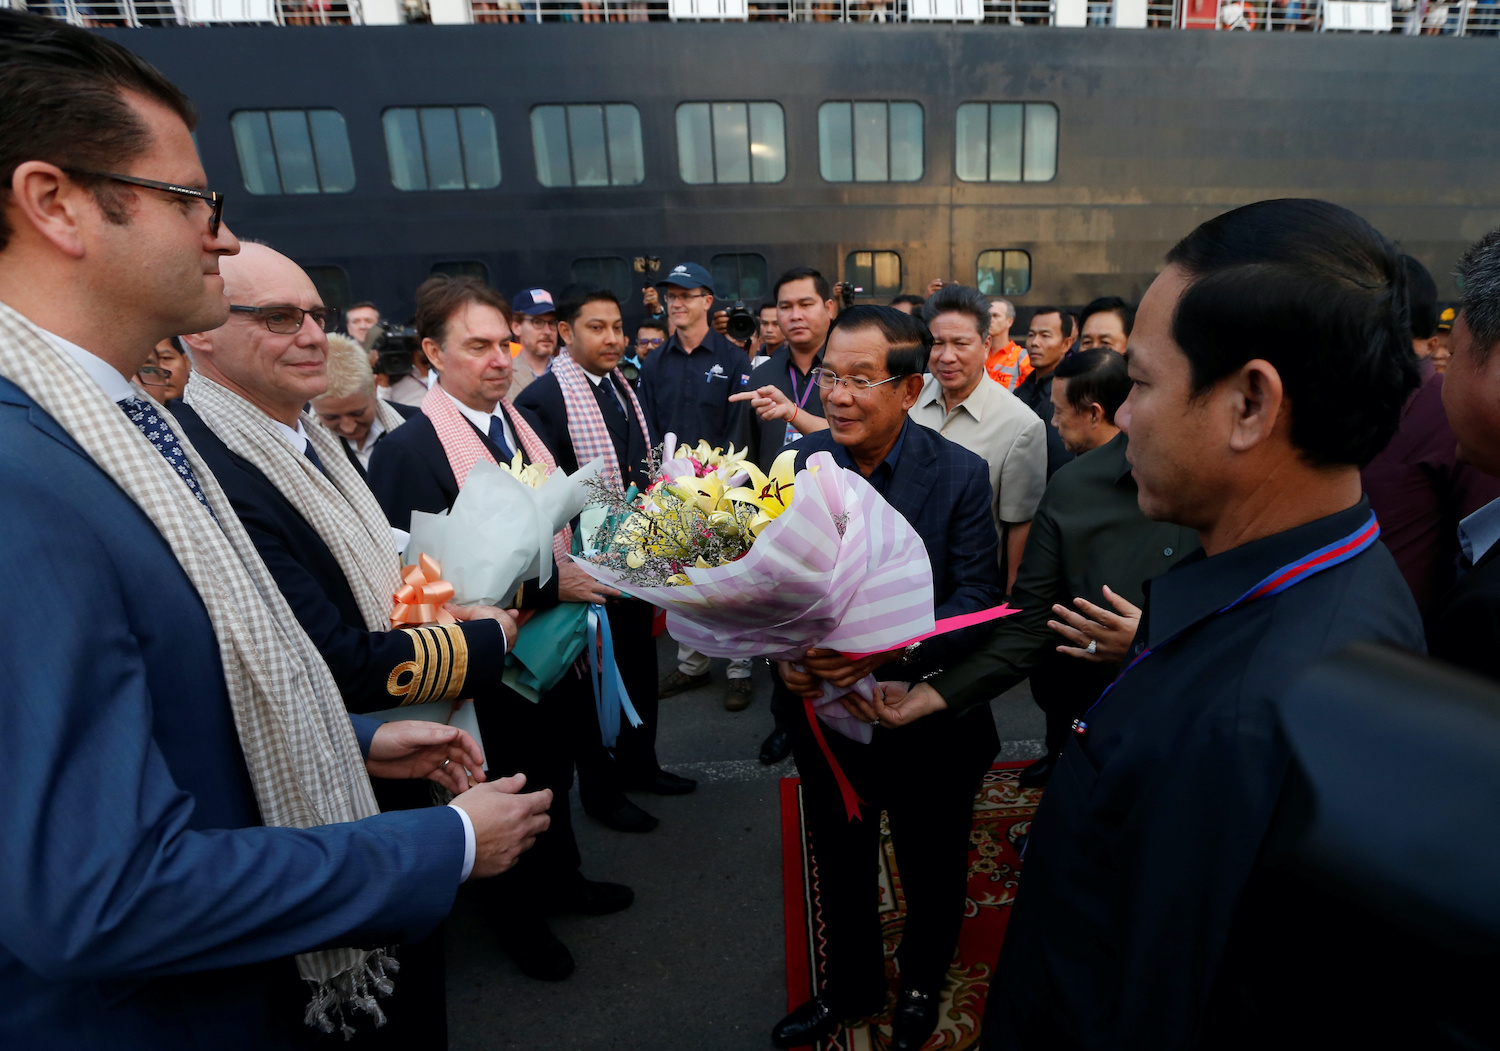 Prime Minister Hun Sen offers flowers as he welcomes the passengers and crew of MS Westerdam in Sihanoukville on Friday. (Reuters Photo)